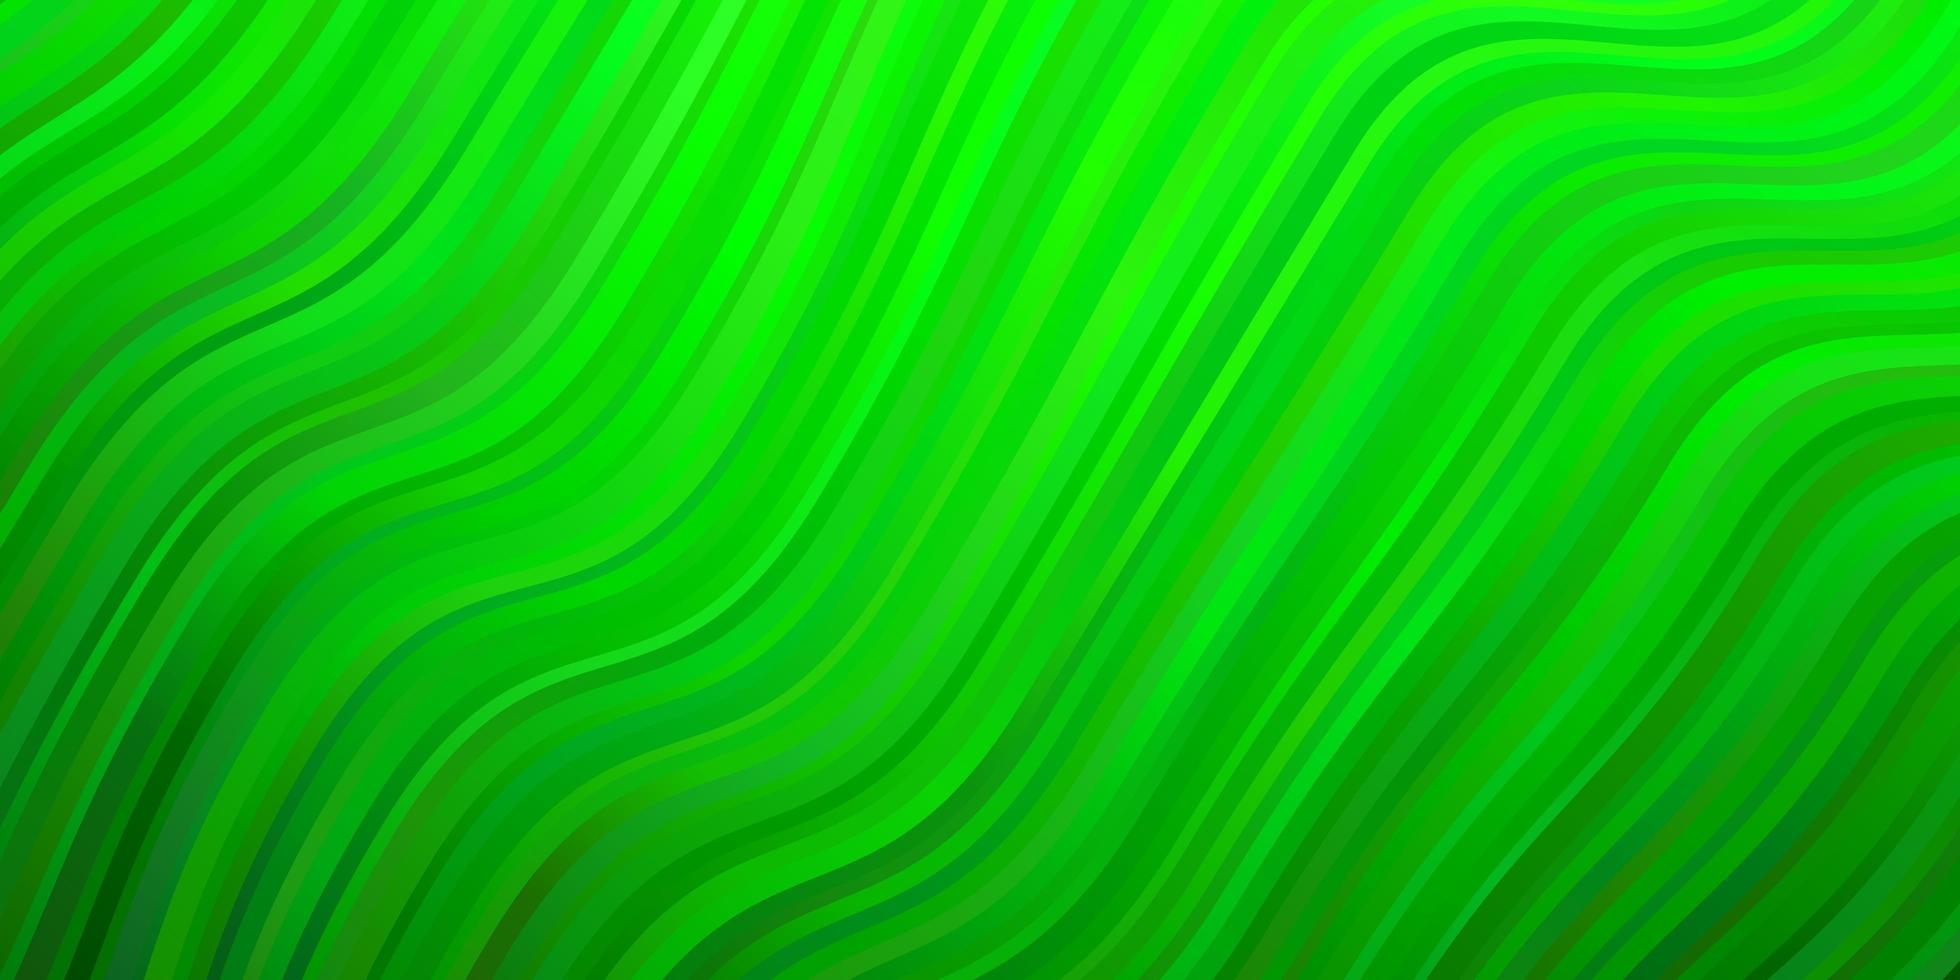 Light Green layout with curves. vector